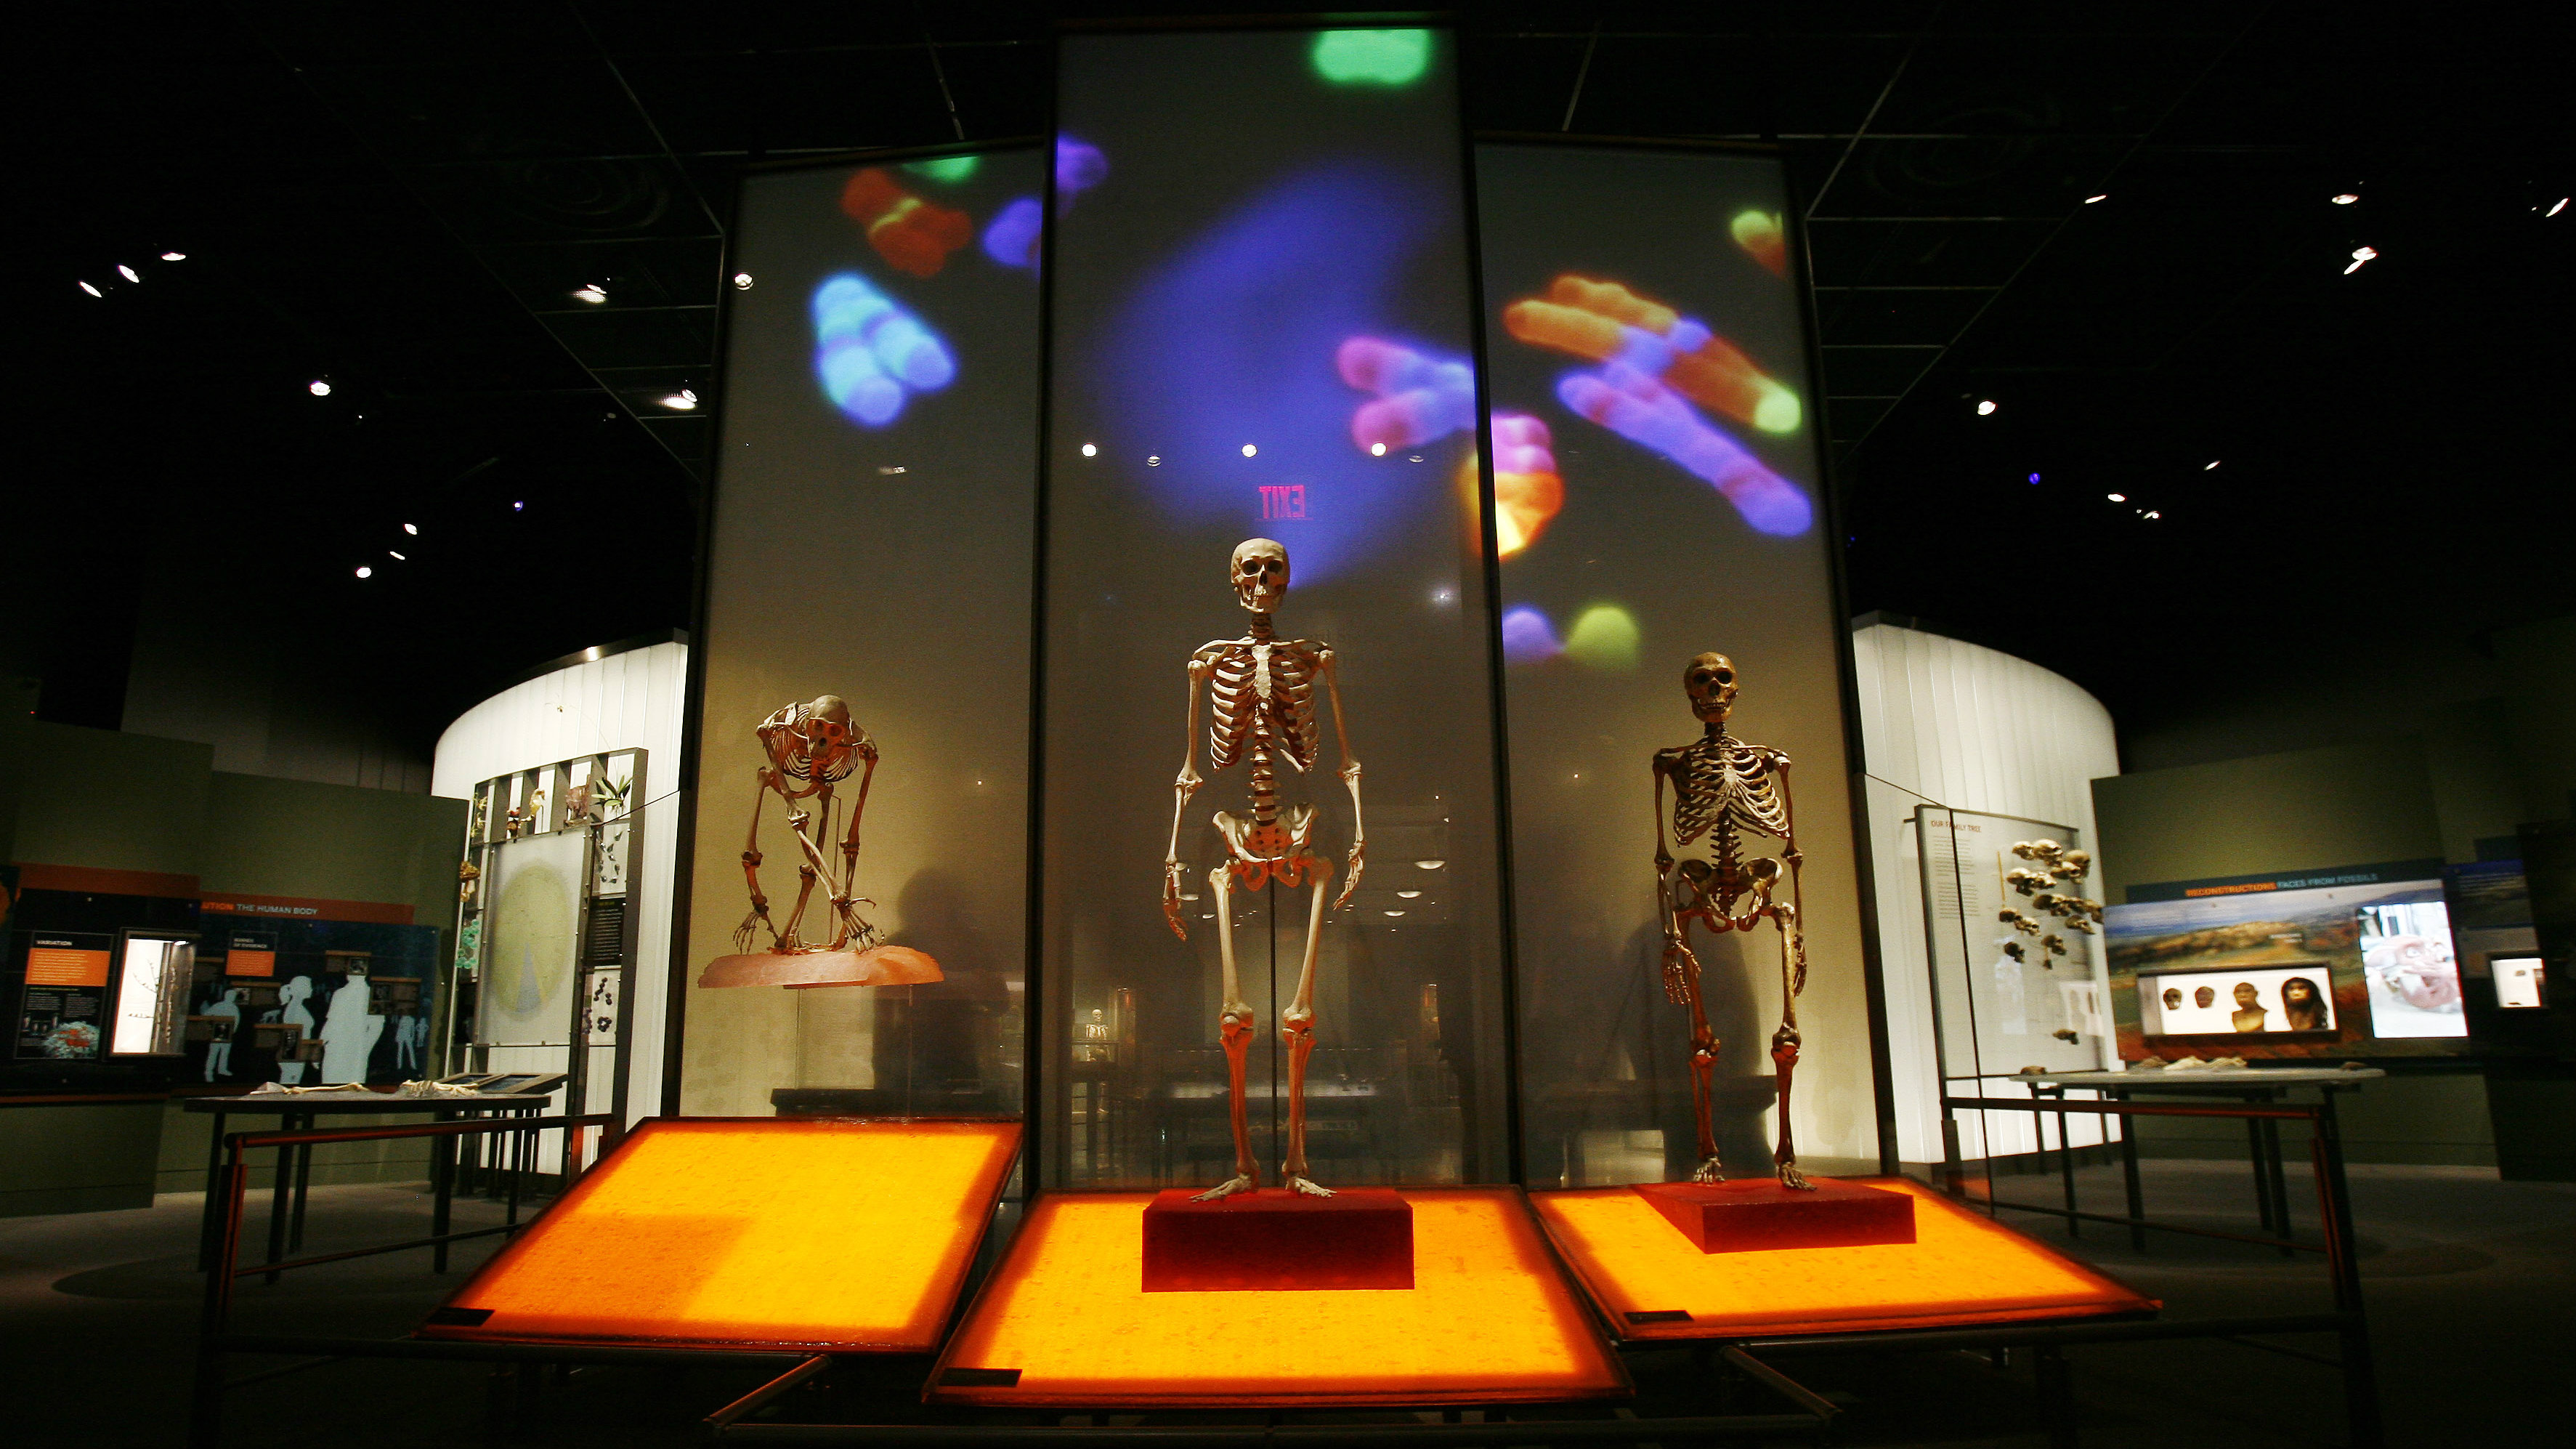 The entrance to the Anne and Bernard Spitzer Hall of Human Origins at the American Museum of Natural History, a permanent exhibition hall that presents the remarkable history of human evolution from our earliest ancestors millions of years ago to modern Homo sapiens, is seen in New York, February 7, 2007. The exhibit will open to the public on February 10, 2007.